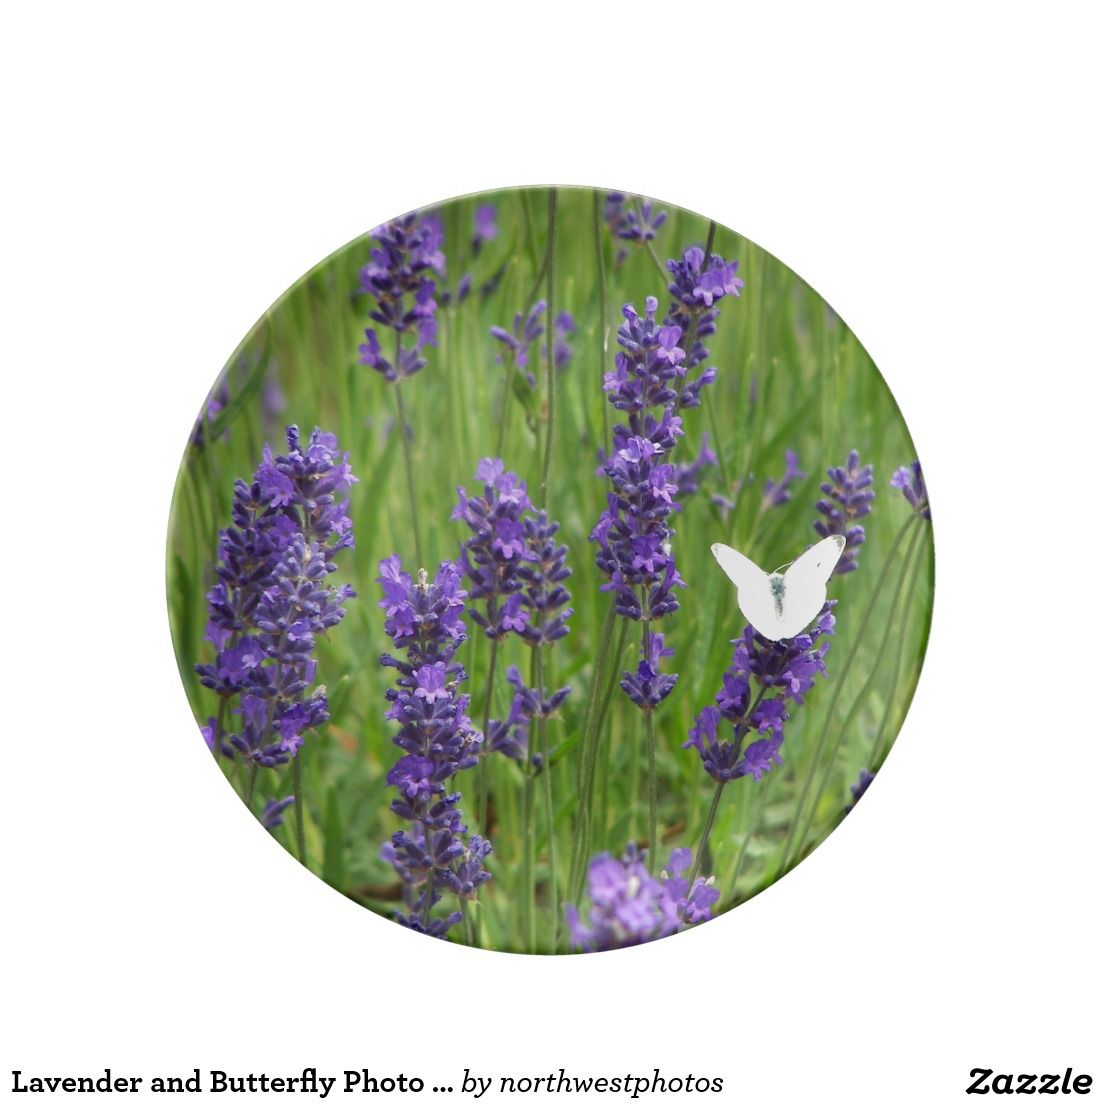 Lavender and Butterfly Photo Porcelain Dinner Plate